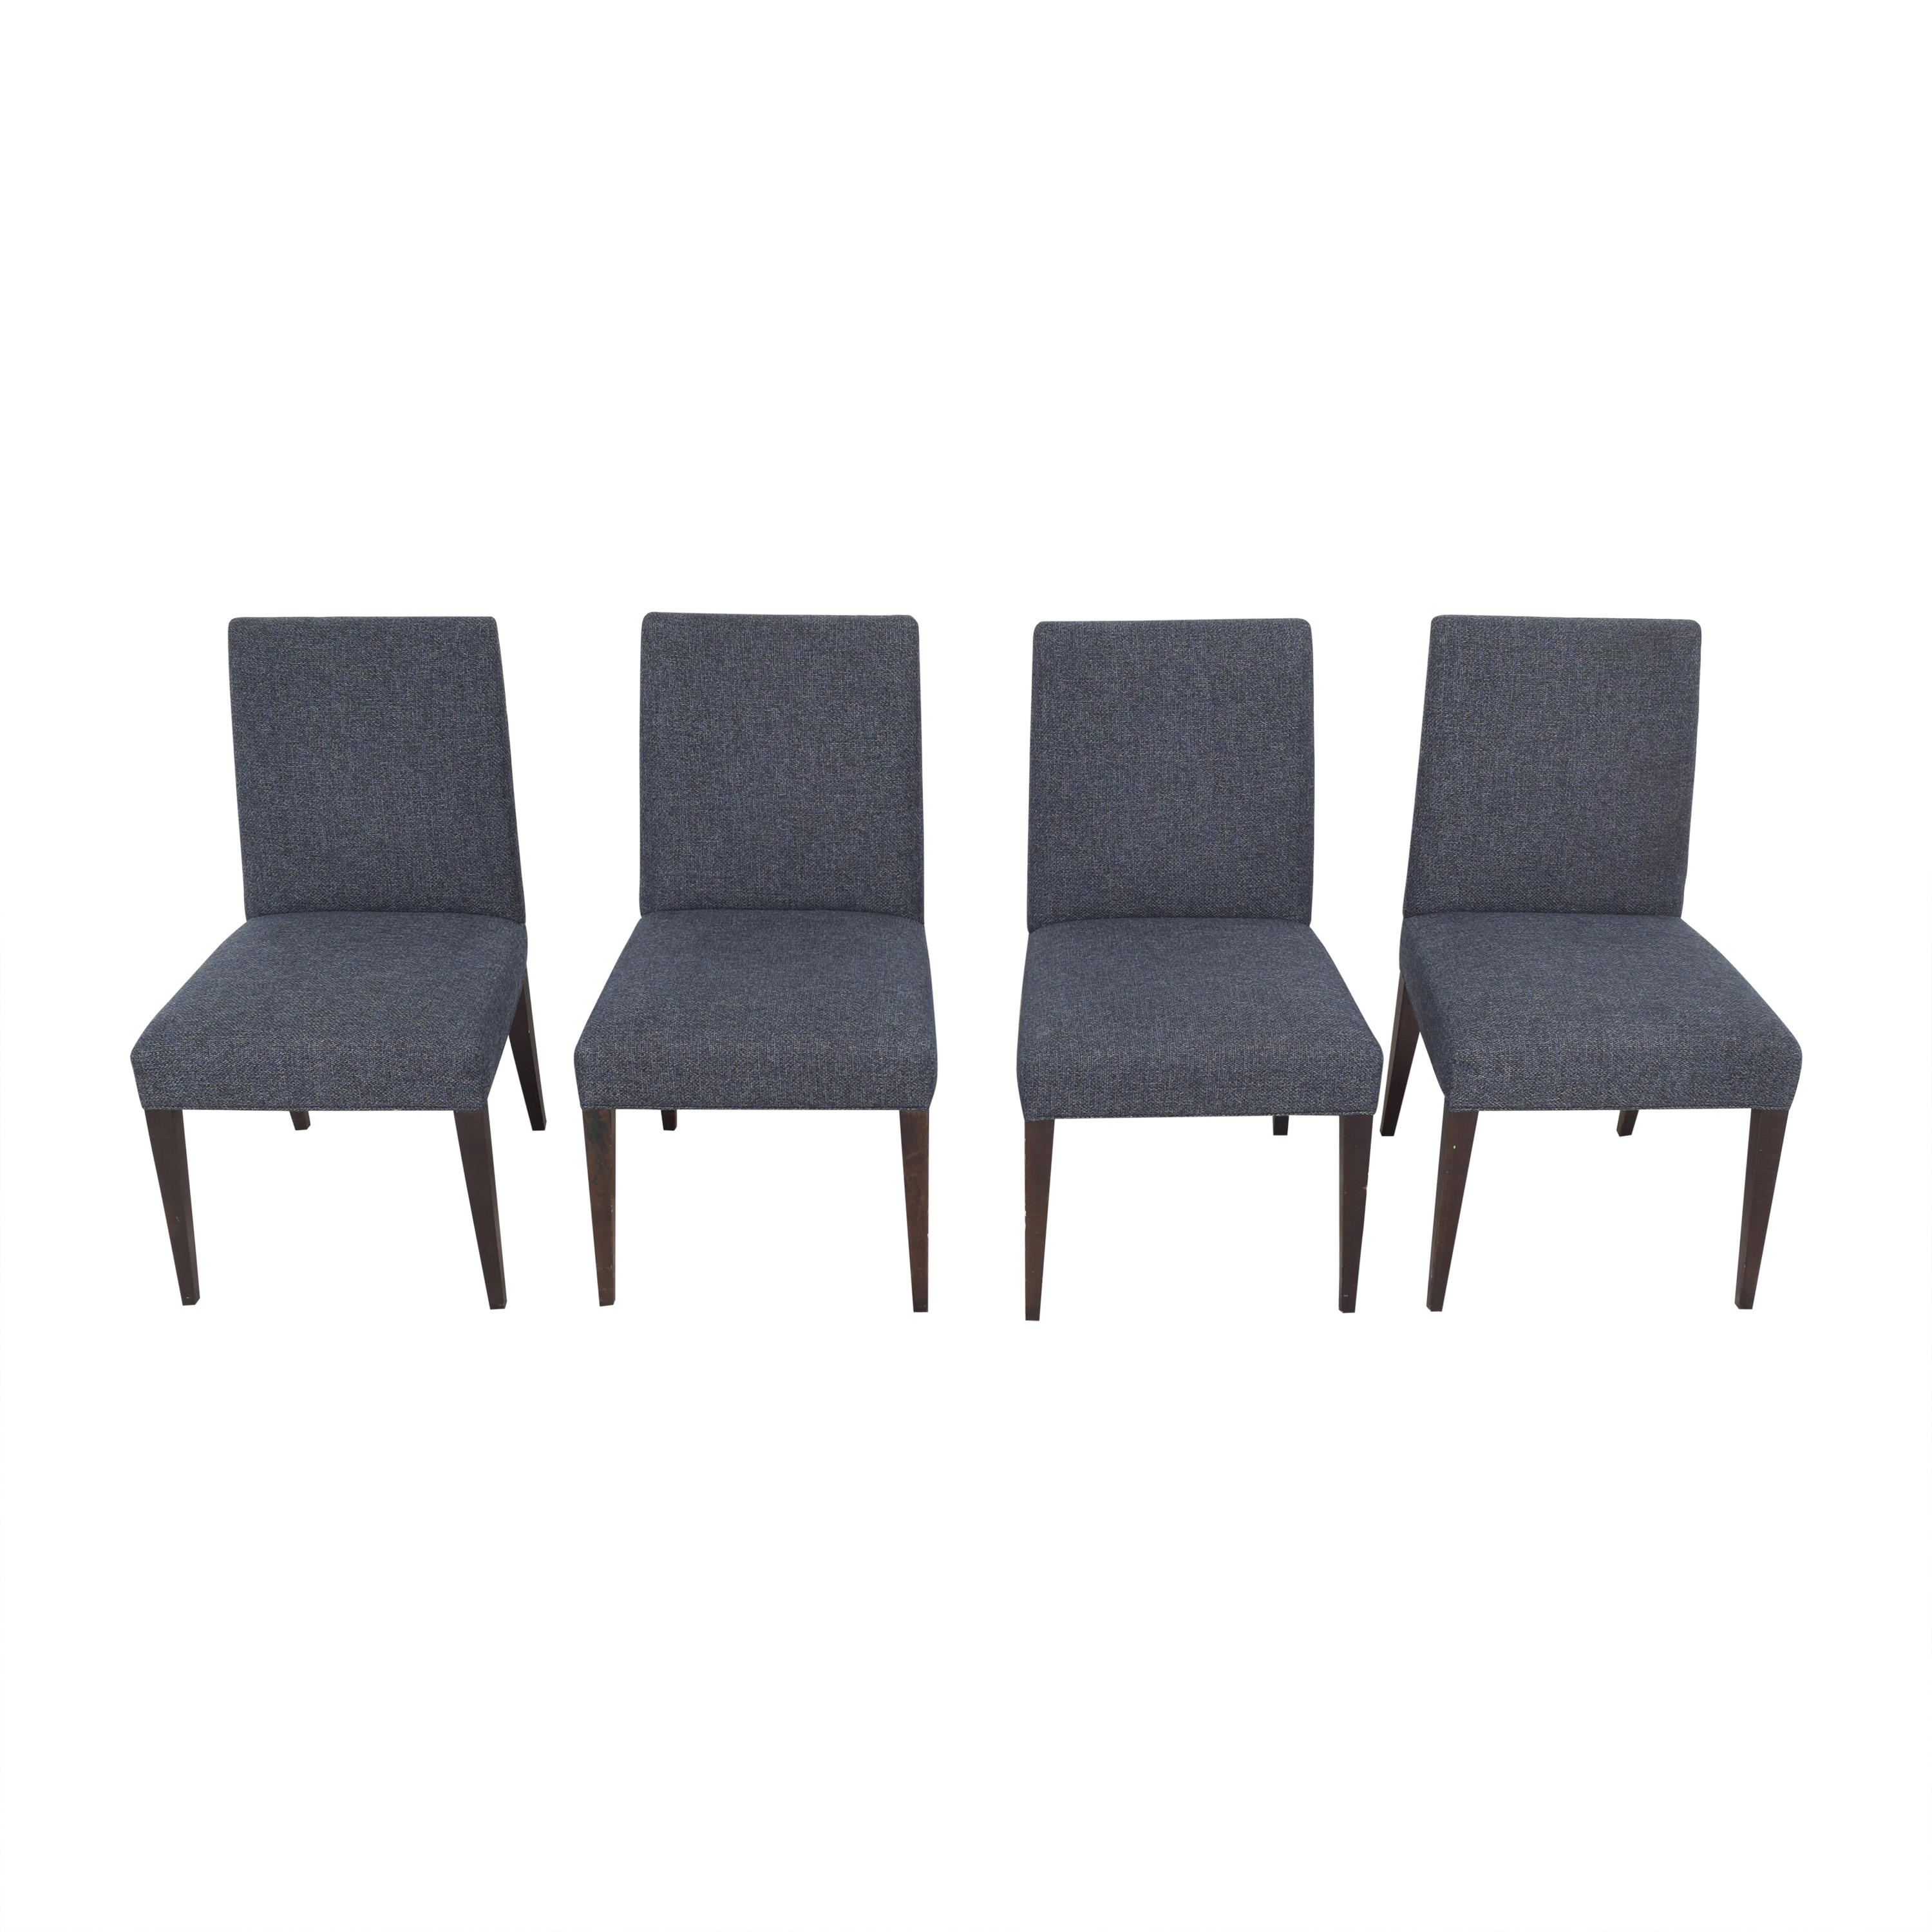 Crate & Barrel Crate & Barrel Miles Upholstered Dining Chairs nj